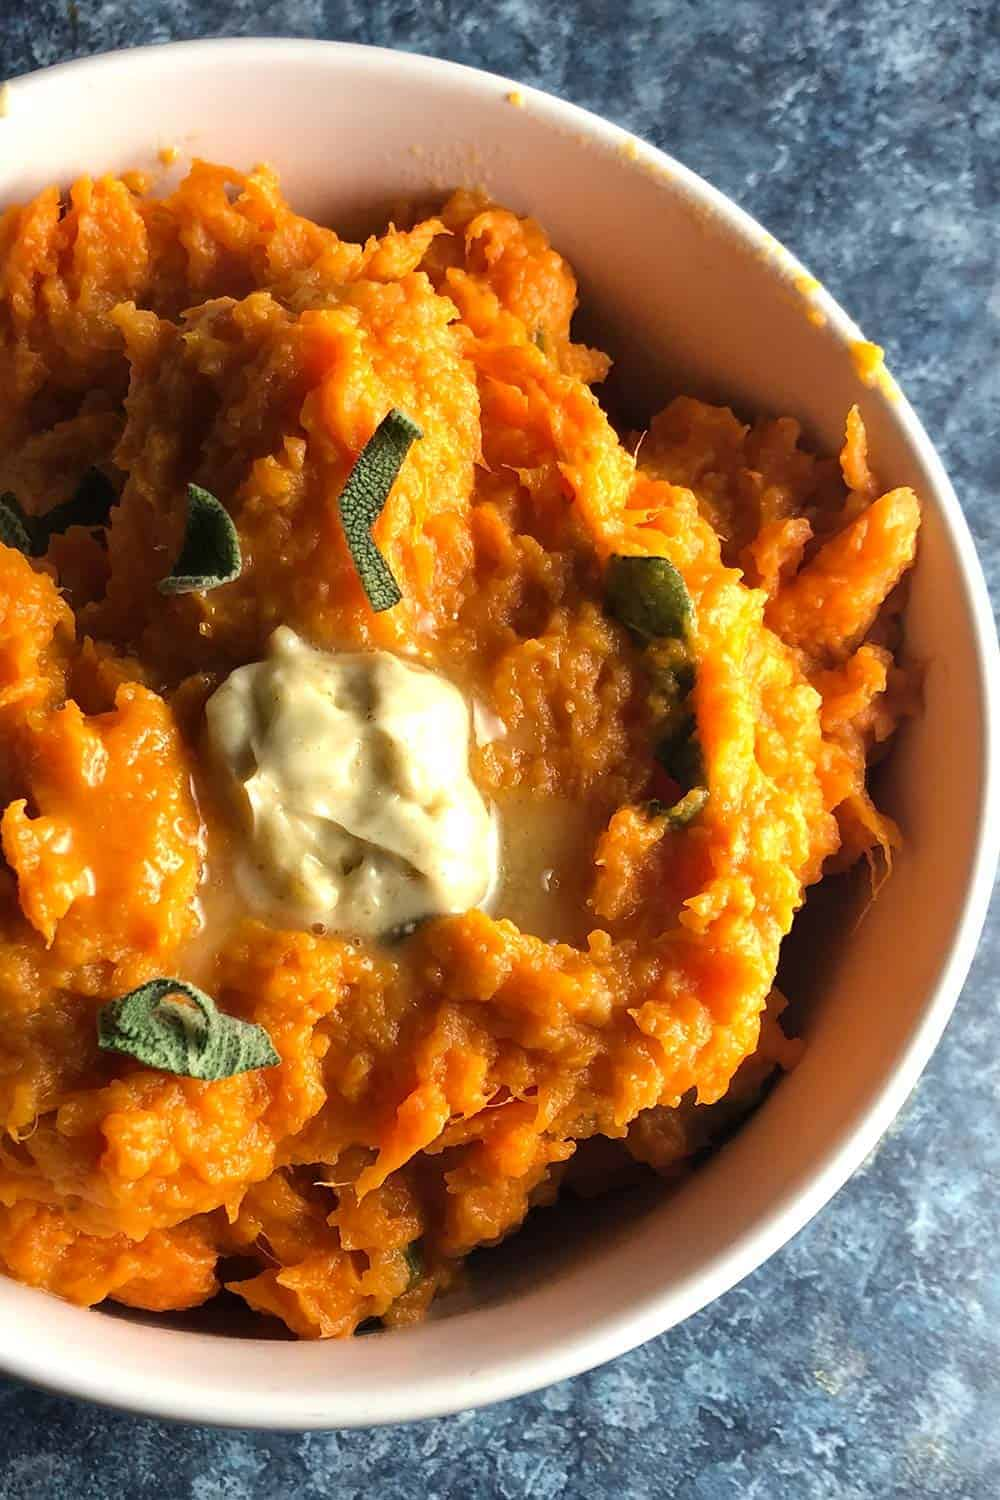 mashed sweet potatoes in a bowl with cumin sage butter.